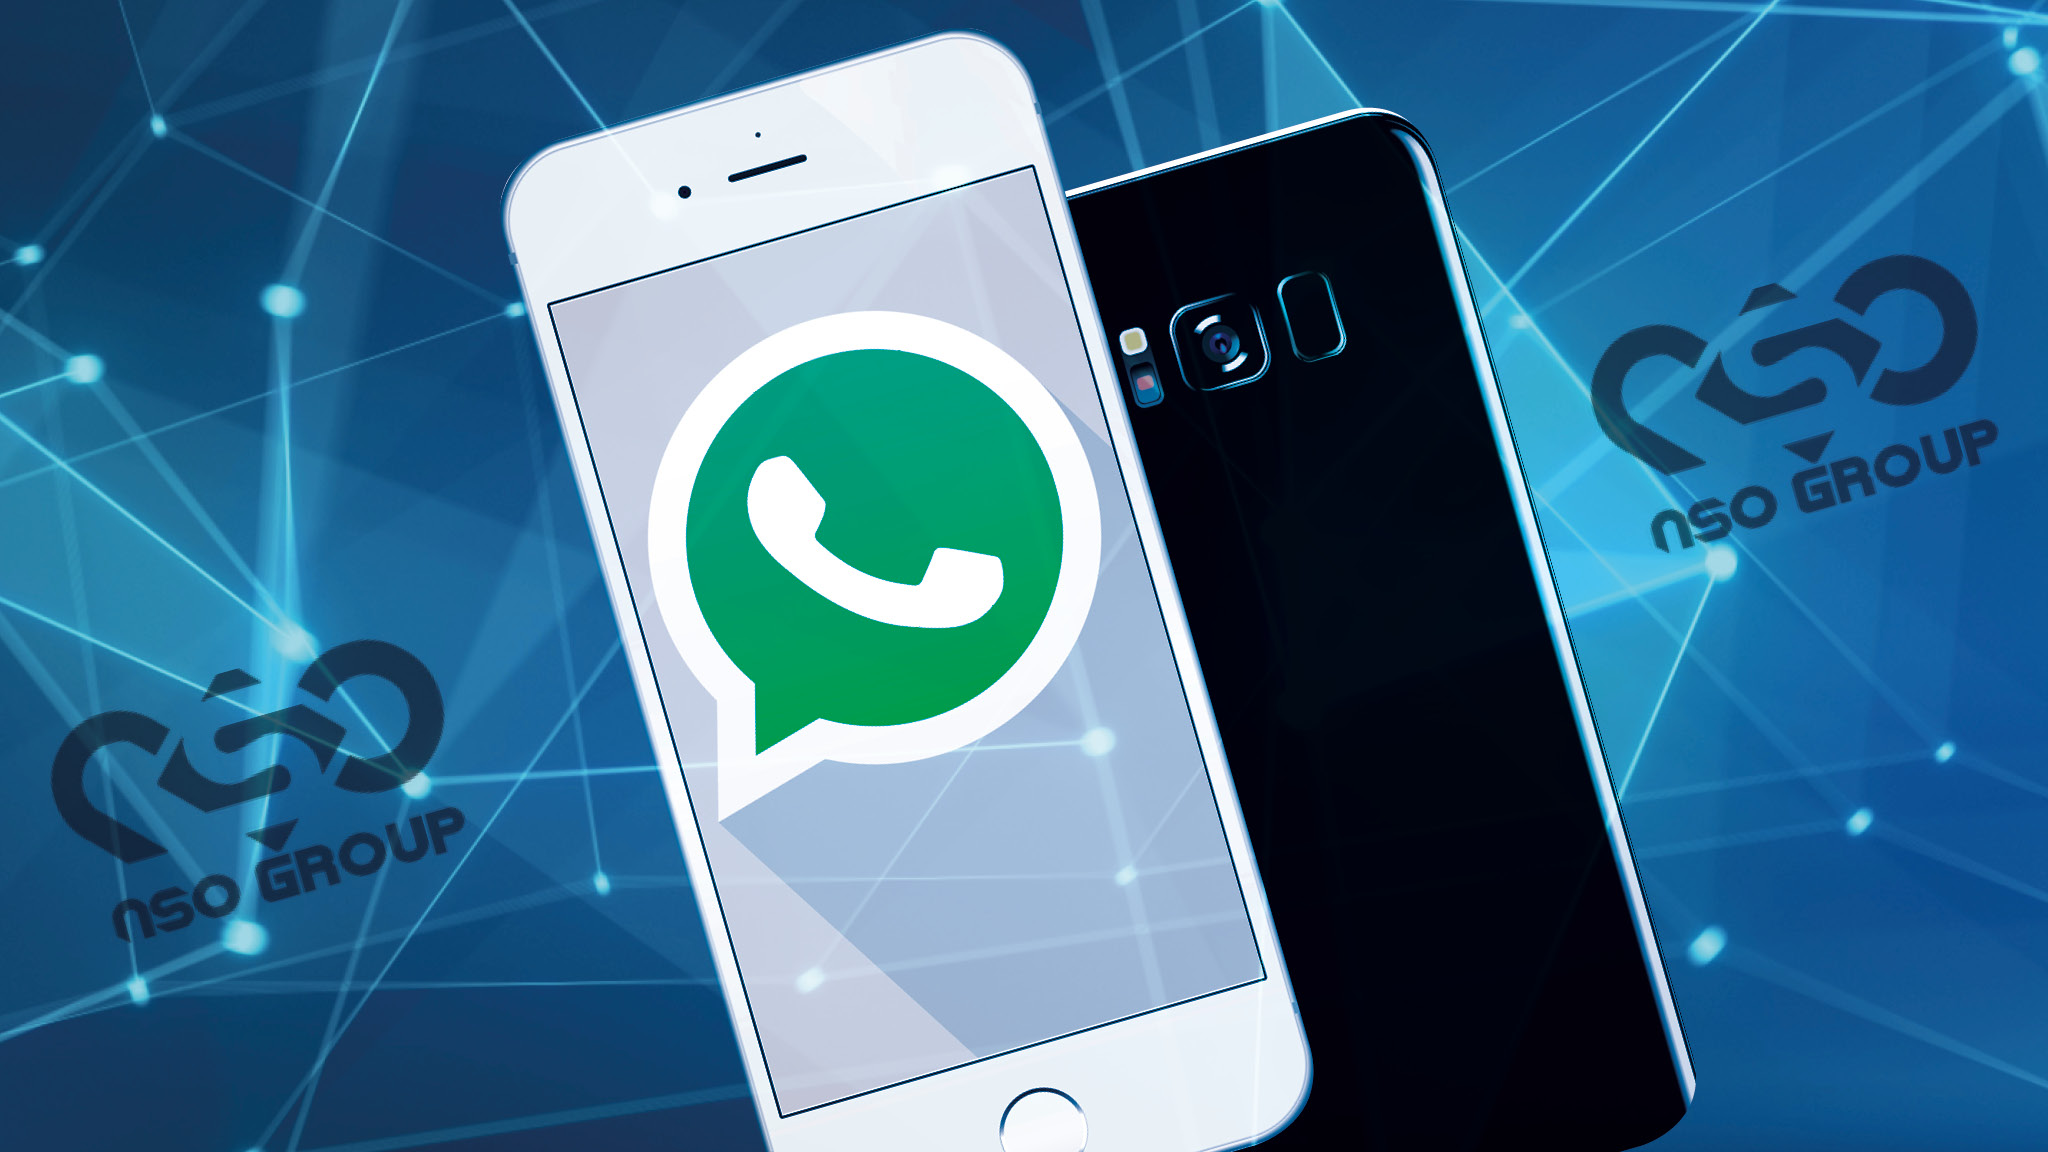 WhatsApp voice calls used to inject Israeli spyware on